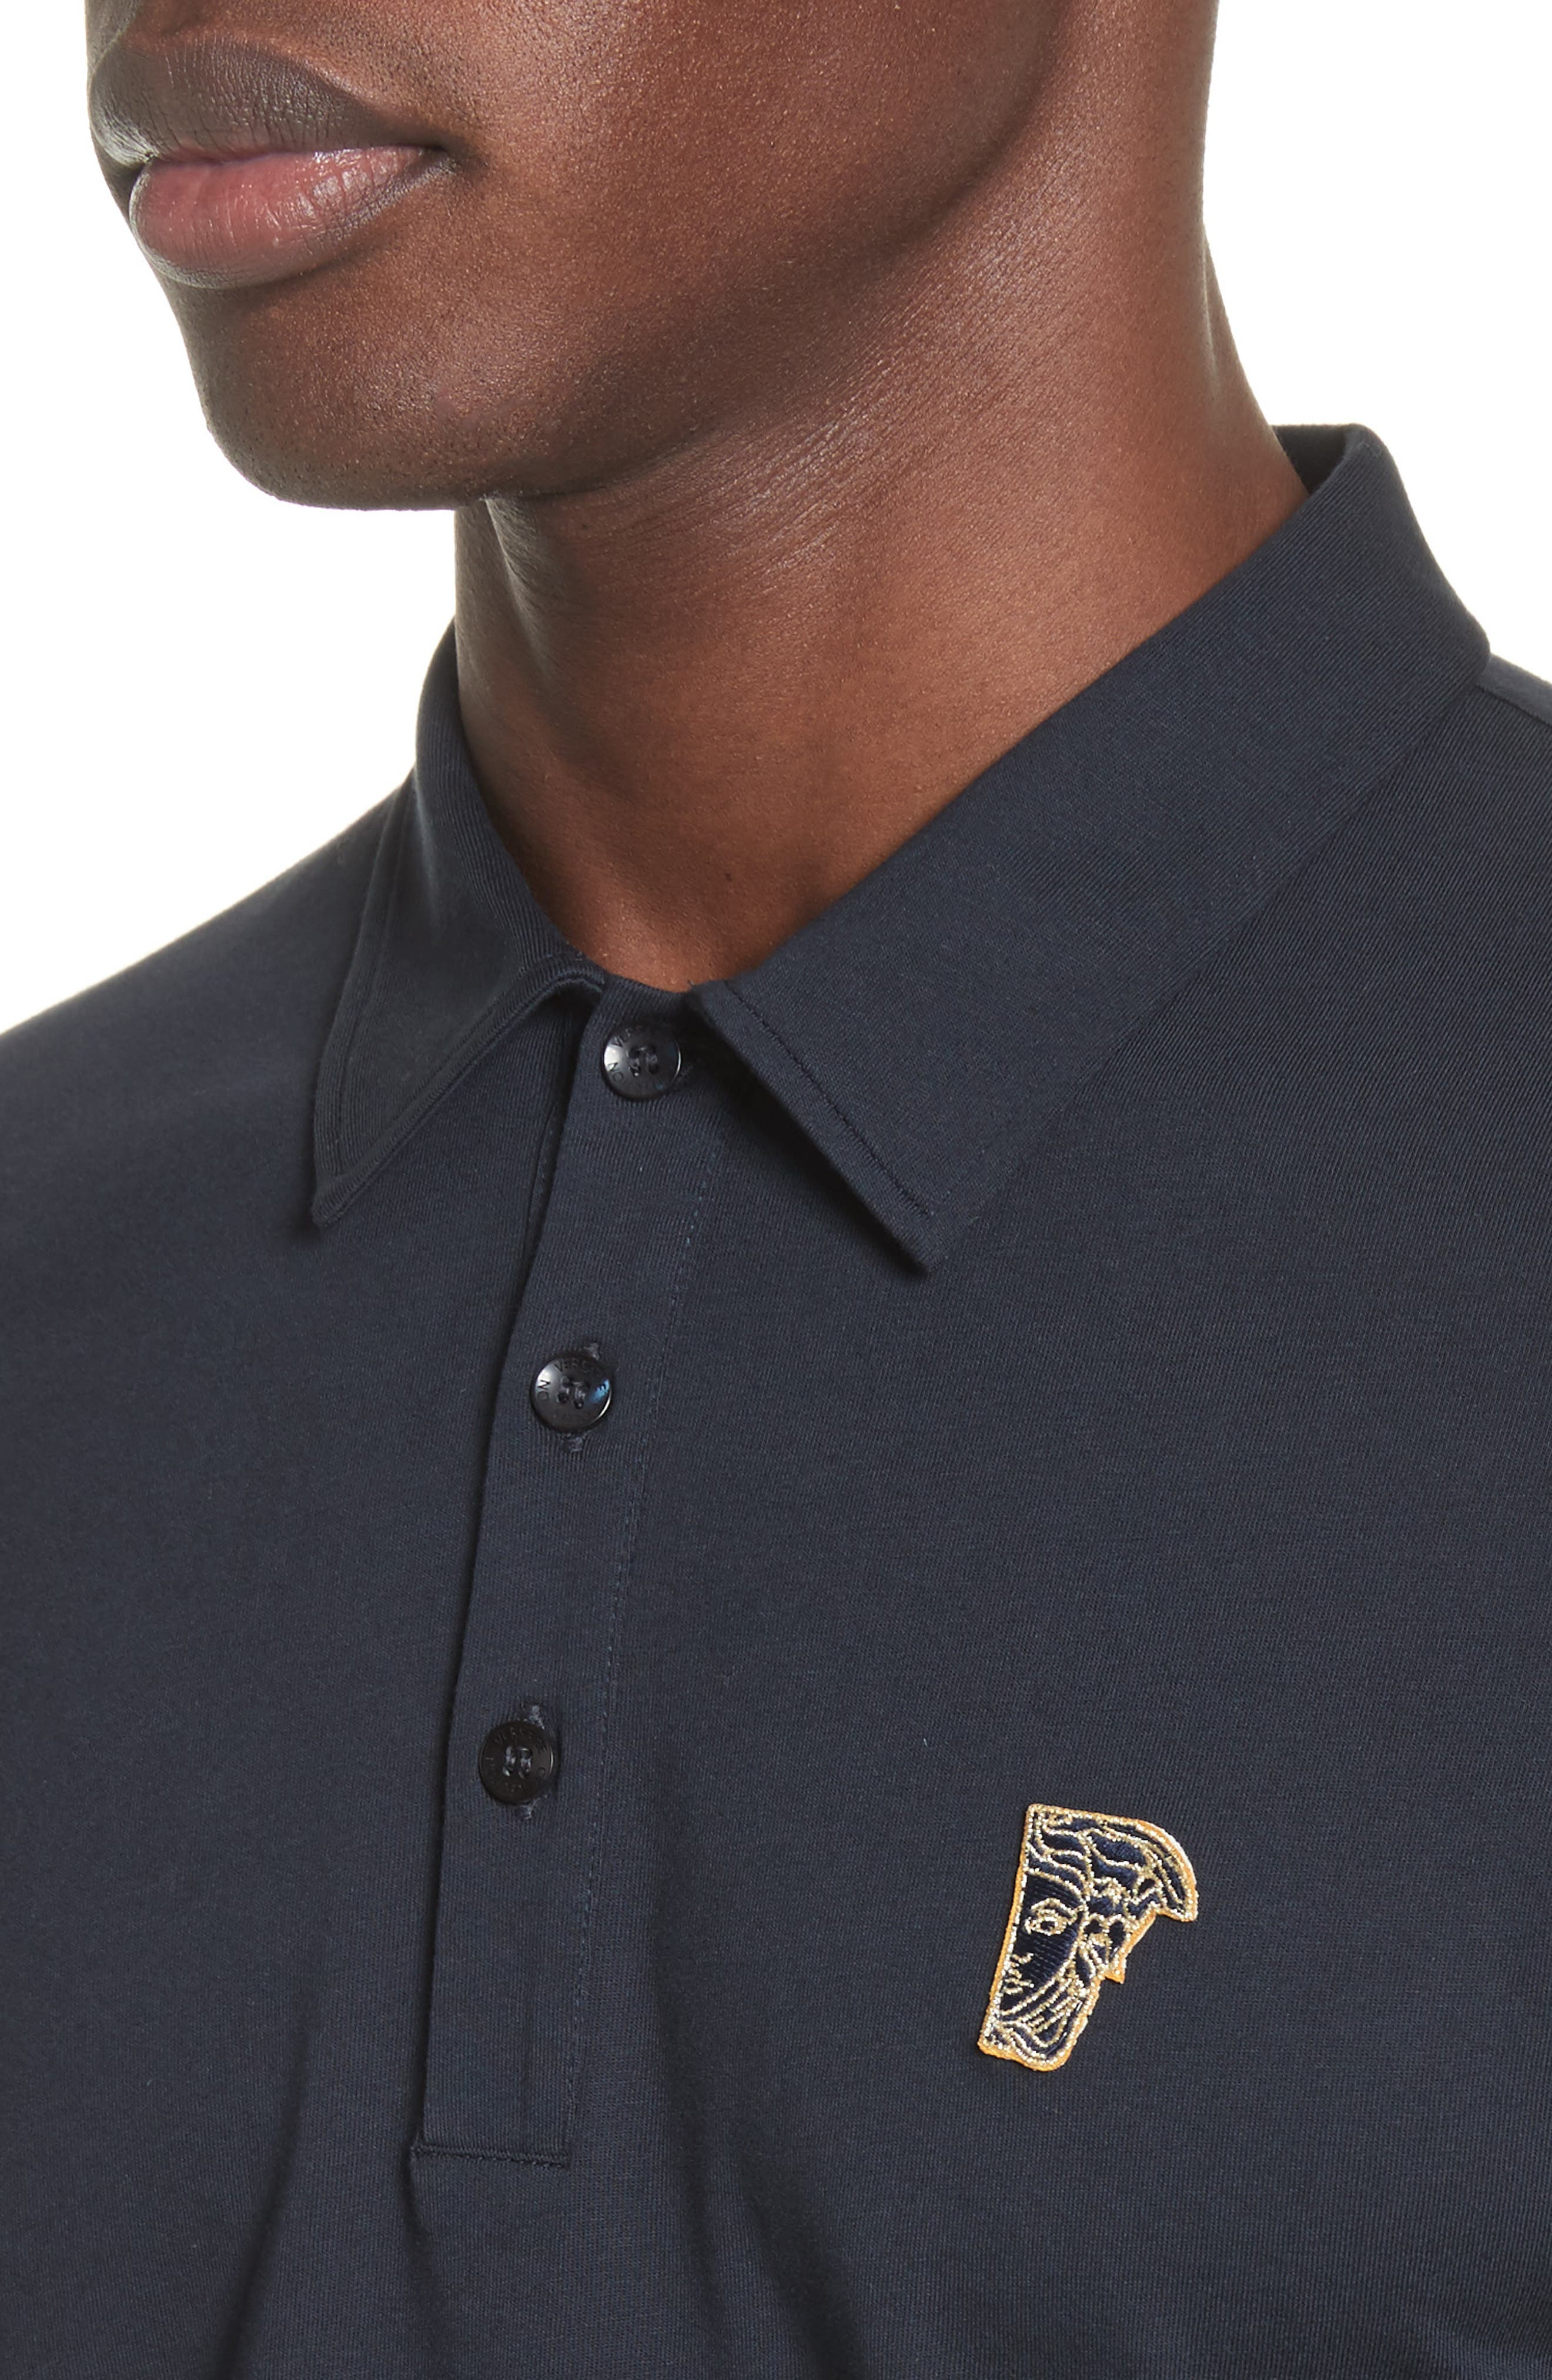 Trim Fit Polo,                             Alternate thumbnail 4, color,                             NAVY/GOLD